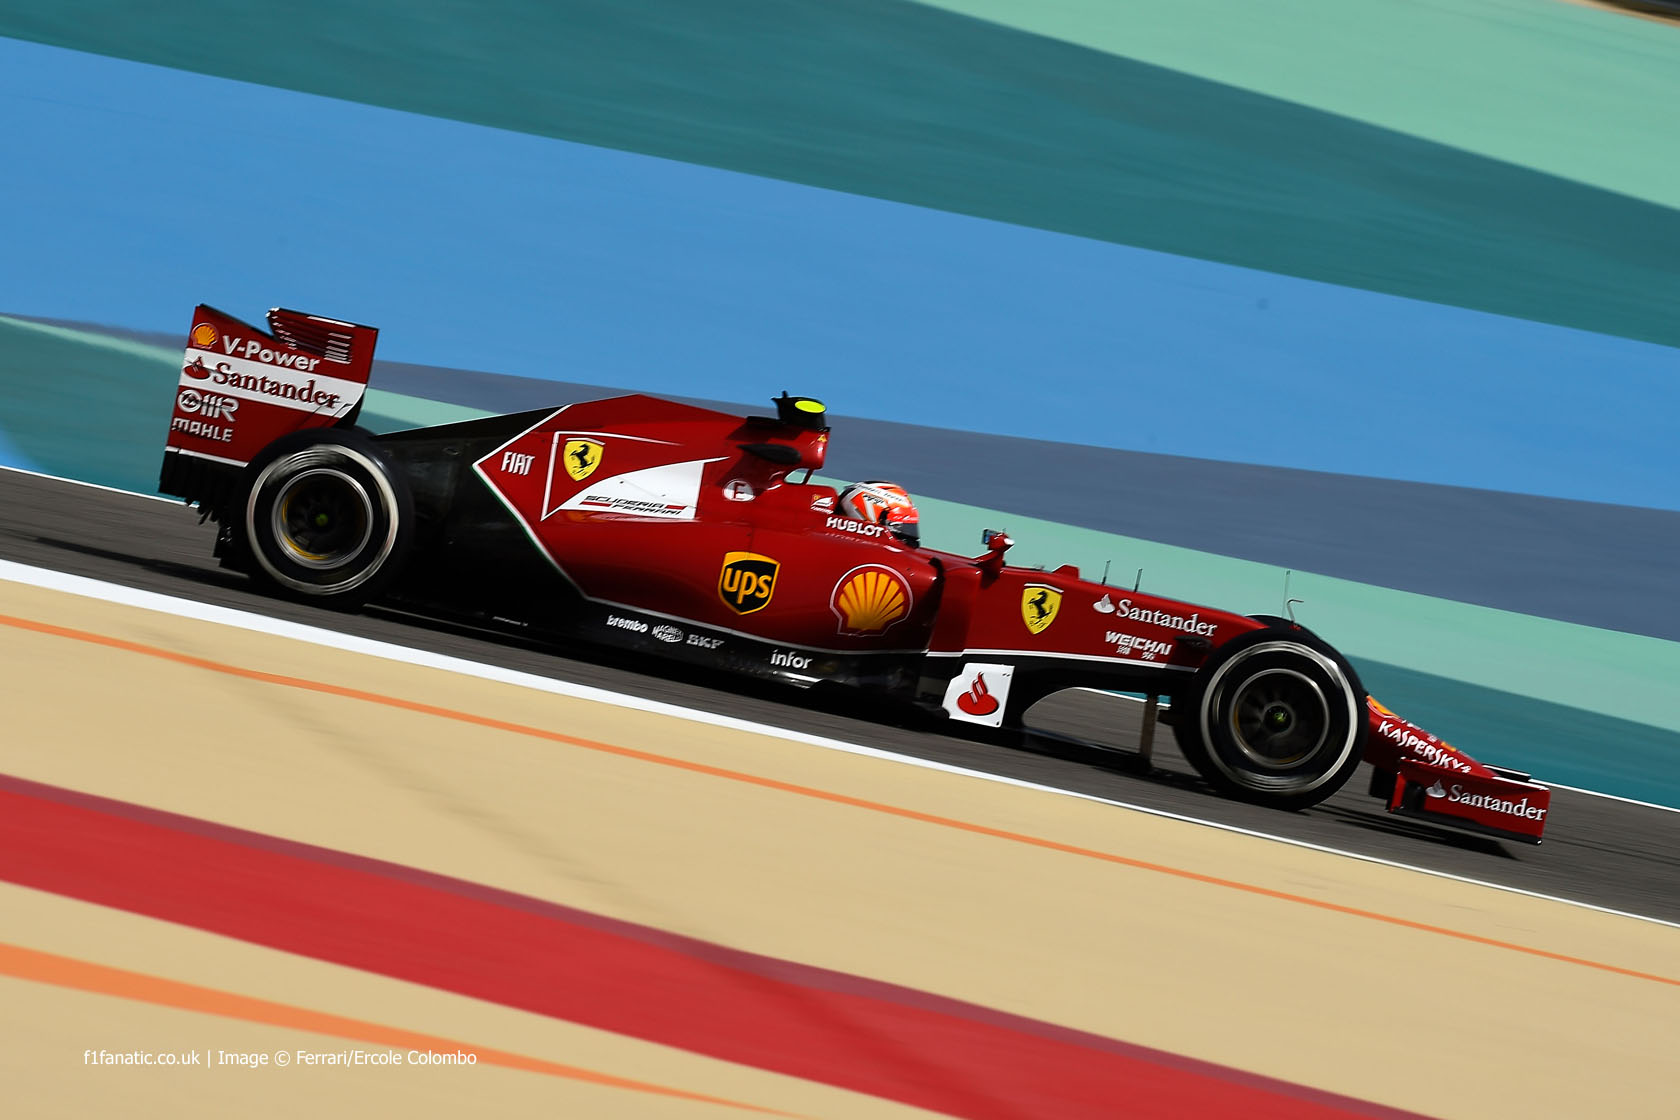 Kimi Raikkonen, Ferrari, Bahrain International Circuit, 2014